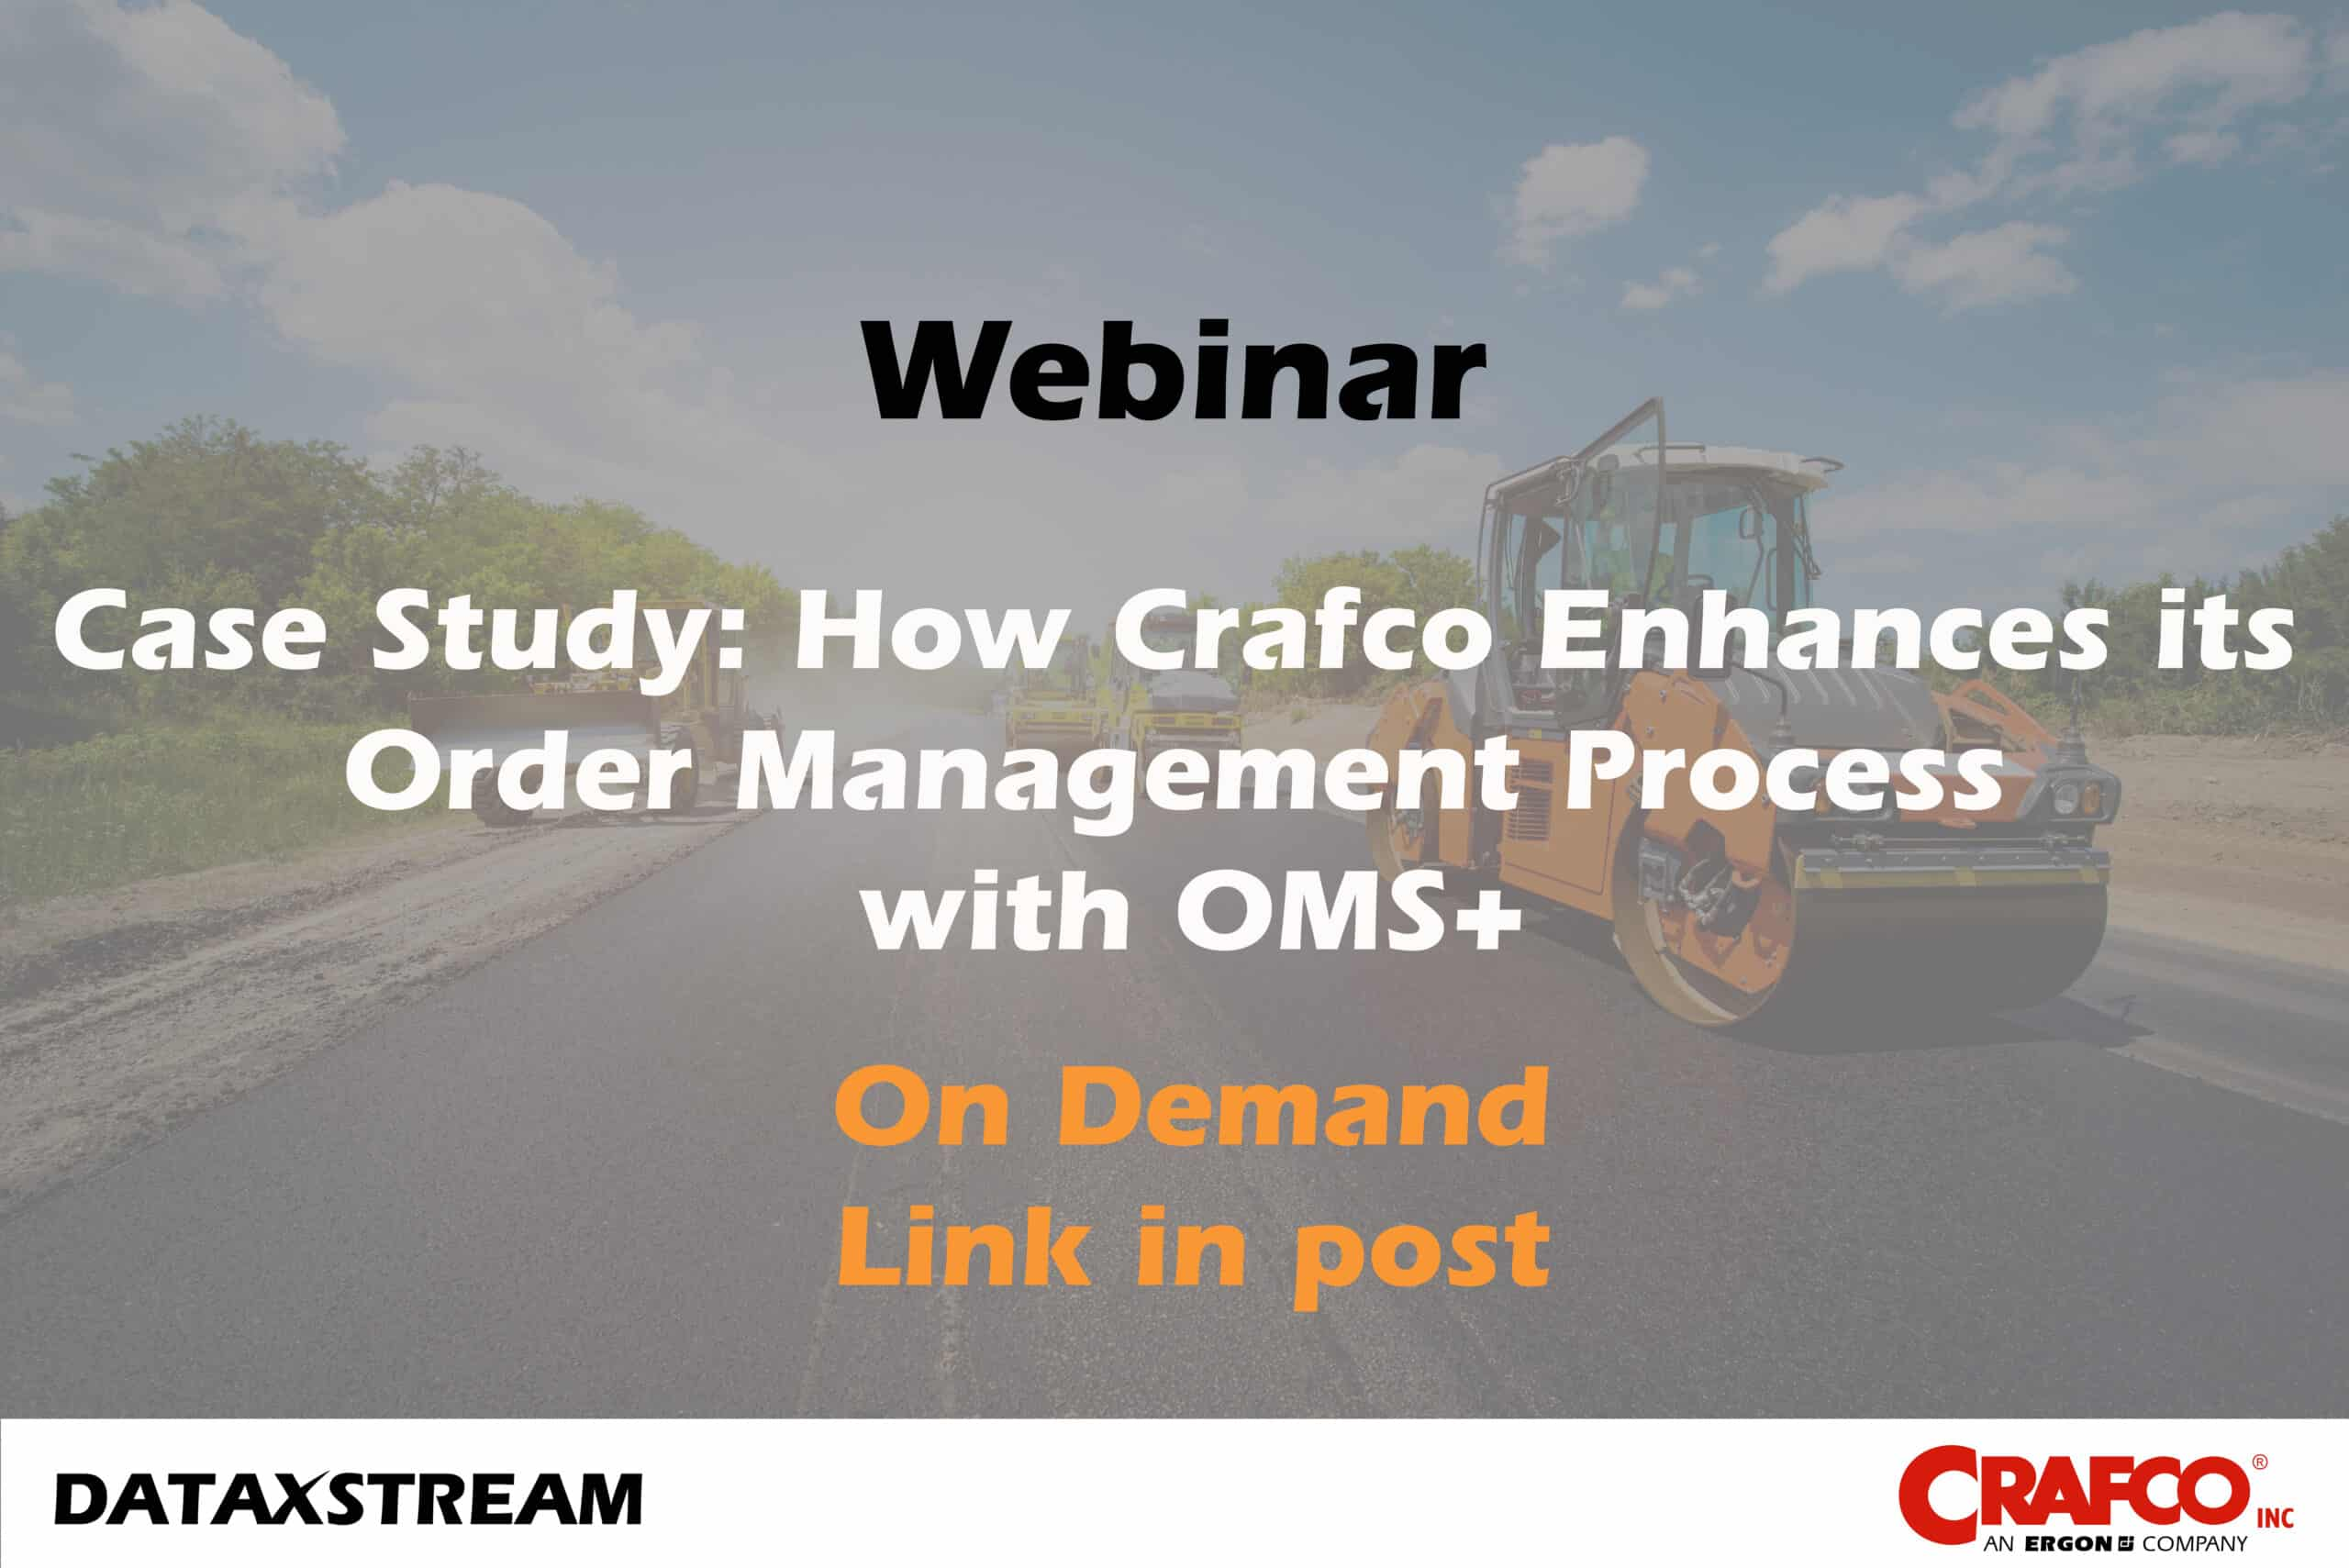 on demand: case study, how crafco enhances its order management process with OMS+